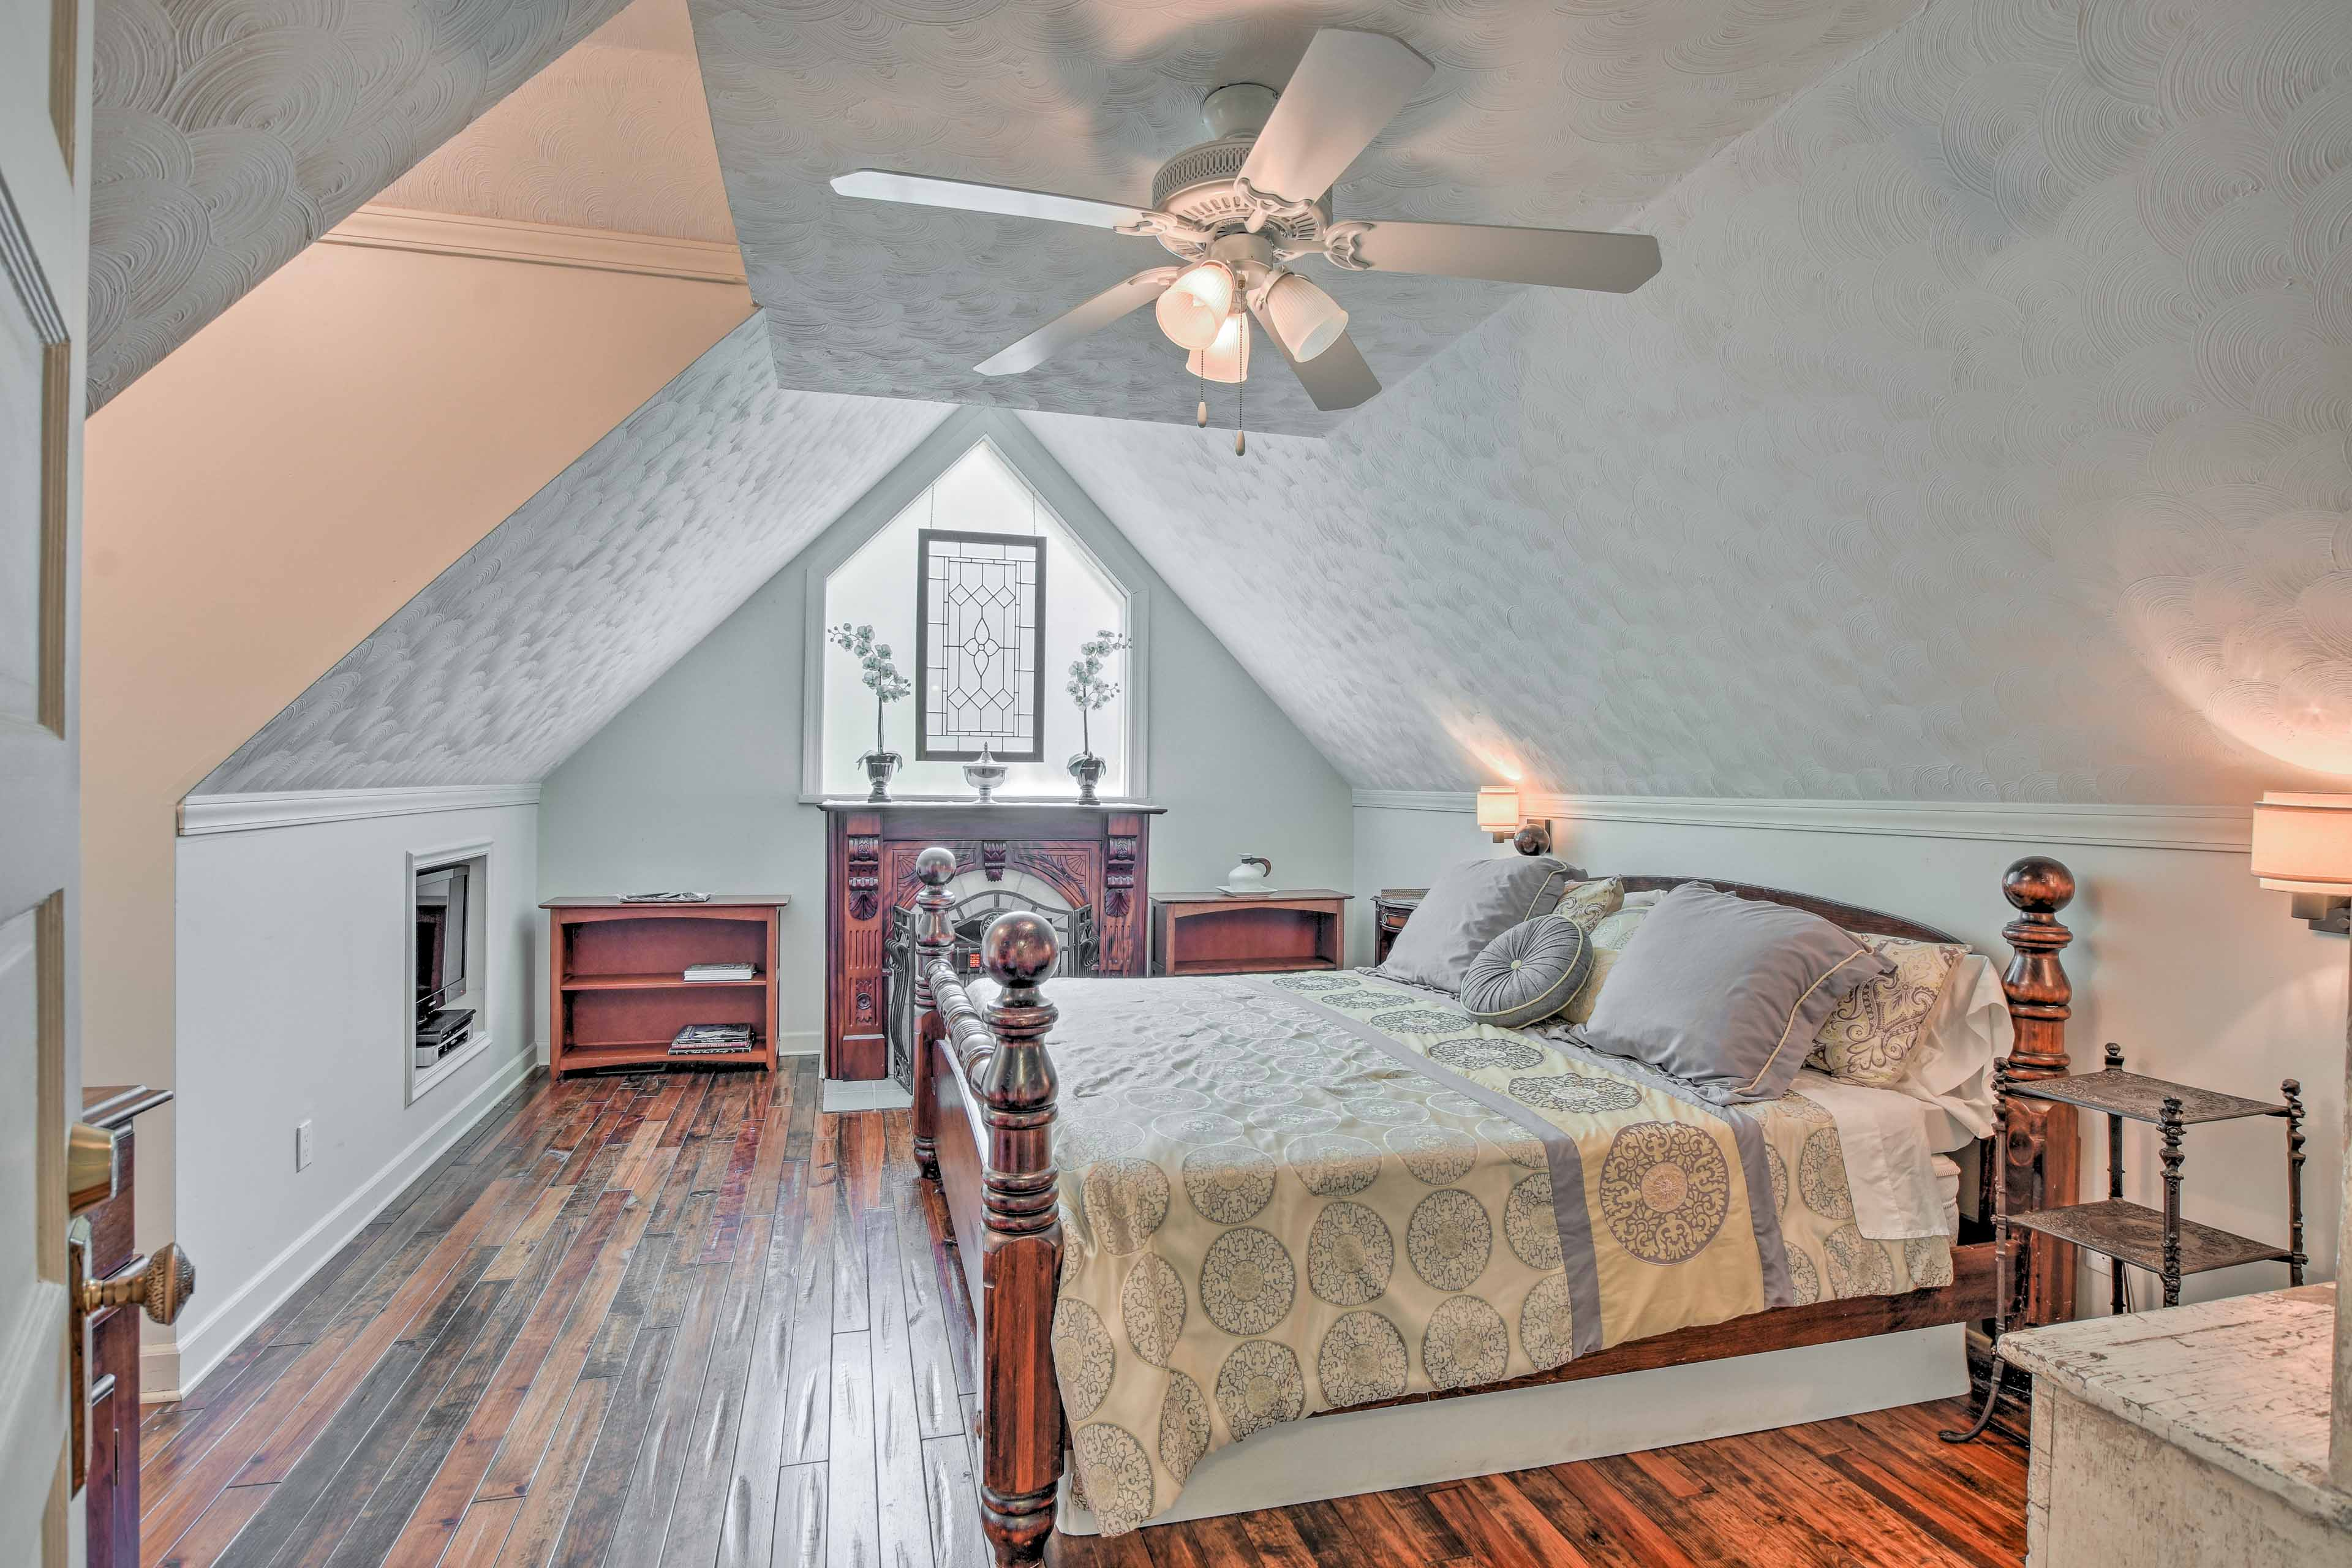 The second bedroom provides a 4-poster queen bed for 2.